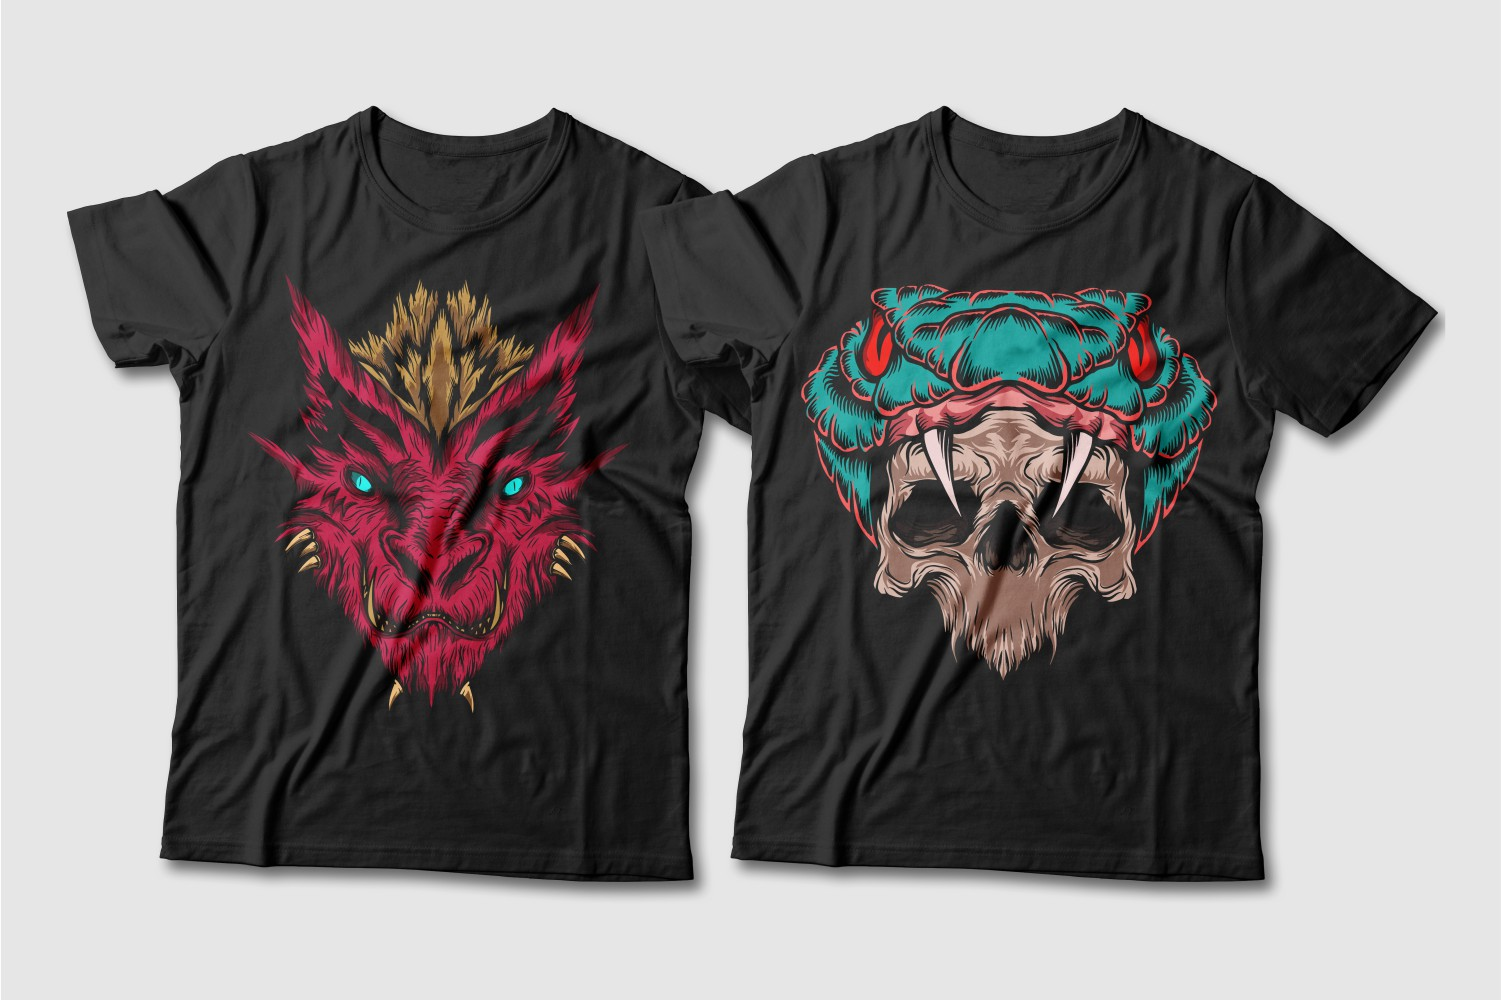 Black T-shirts with a crew neck featuring a crimson dragon with a brown tuft and a turquoise cobra with red eyes and a skull in a papa.